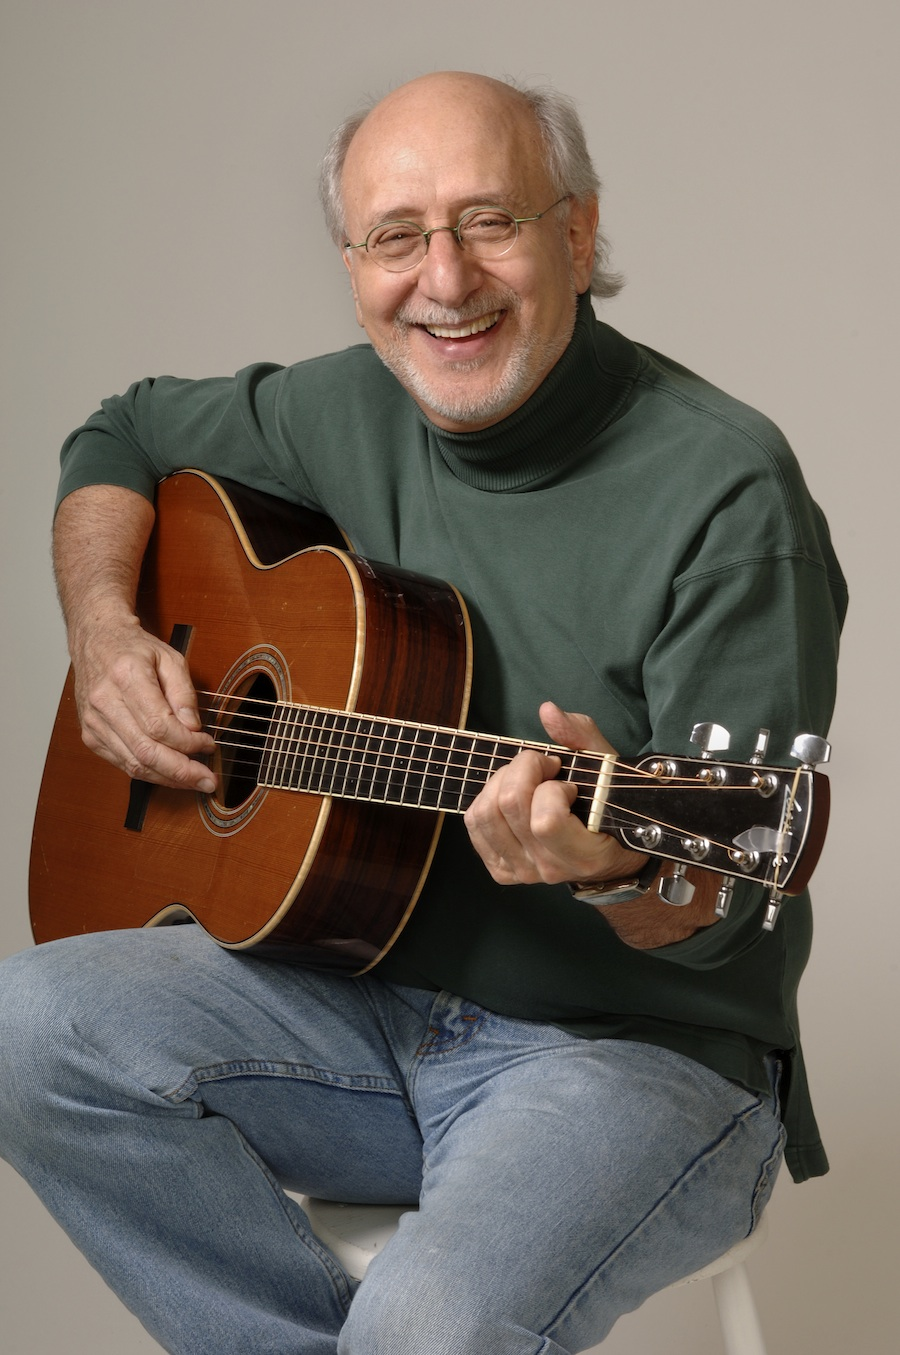 """Click photo to download. Caption: Yarrow's Hanukkah song, """"Light One Candle"""", came across as too earnest for popular taste. Credit: Courtesy Peter Yarrow."""